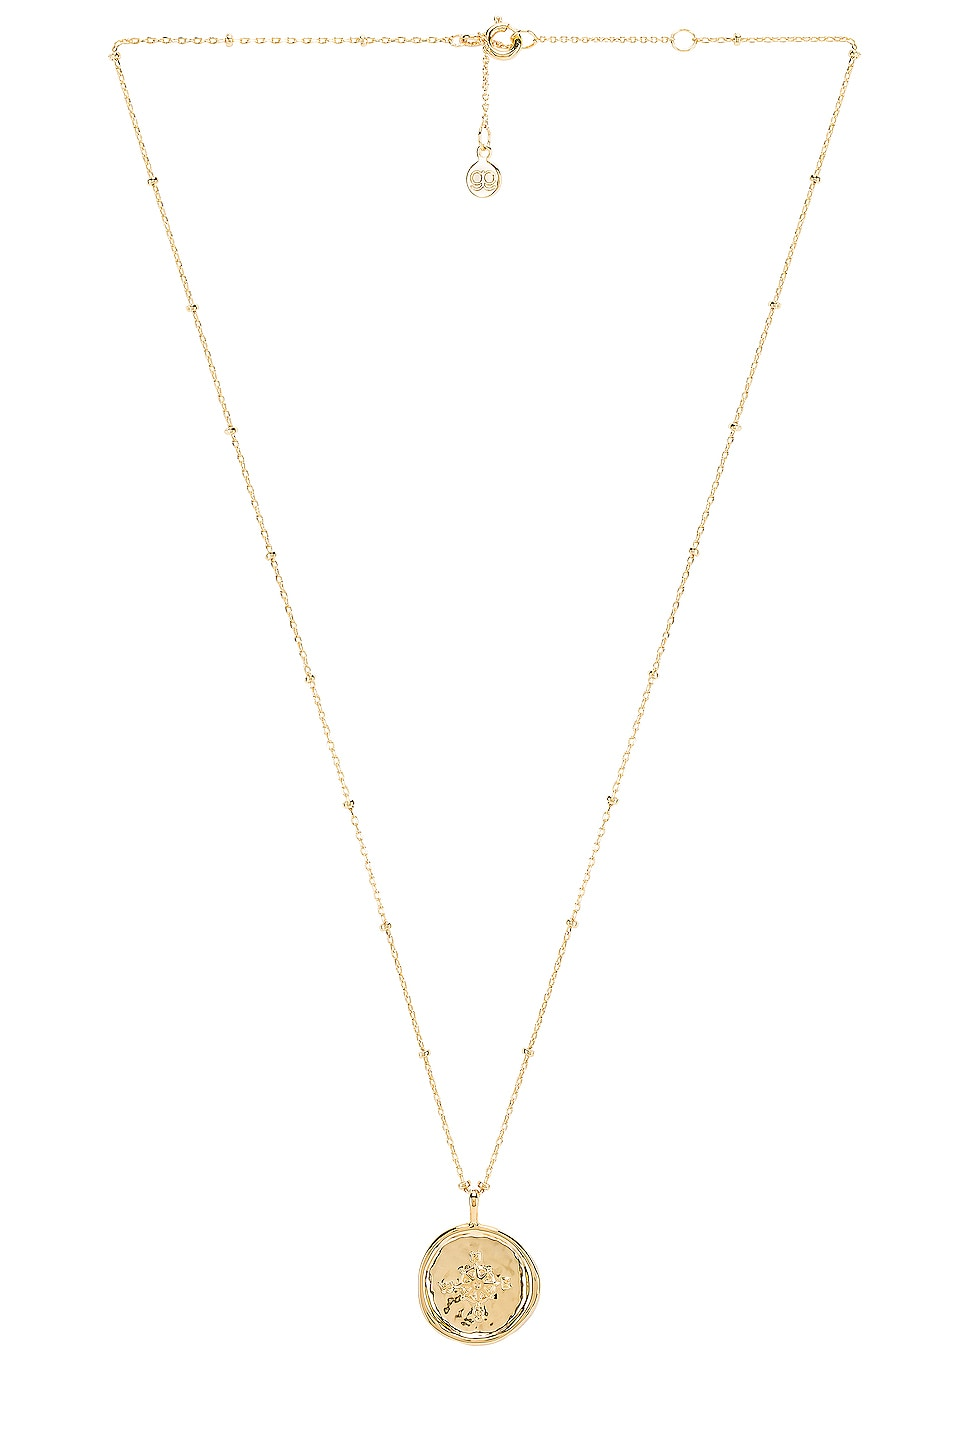 gorjana Compass Coin Necklace in Gold